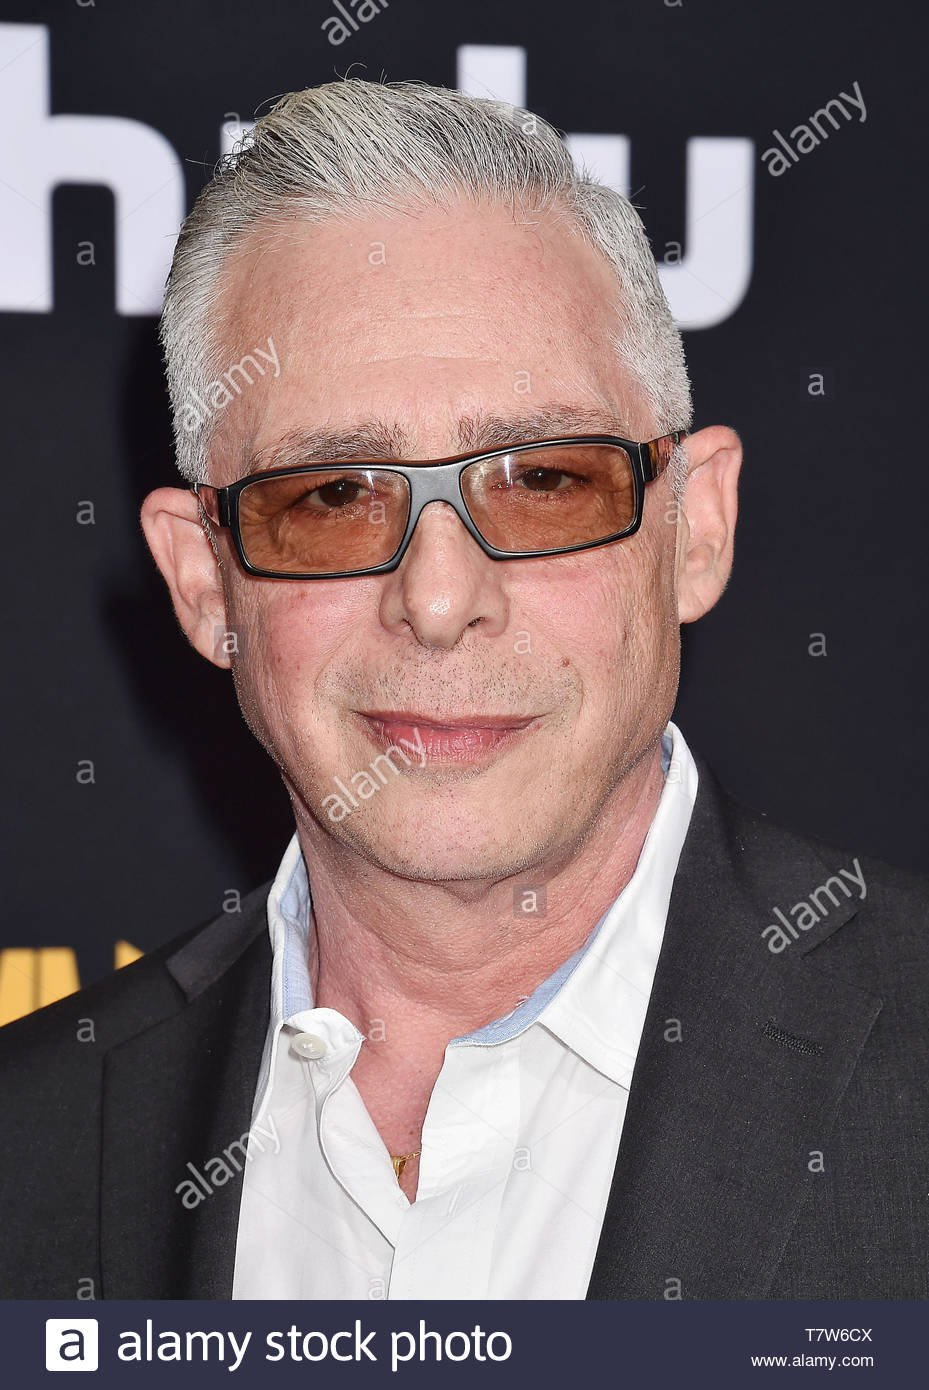 hollywood-ca-may-07-anthony-skordi-arrives-at-the-us-premiere-of-hulus-catch-22-at-tcl-chinese-theatre-on-may-07-2019-in-hollywood-california-T7W6CX.jpg